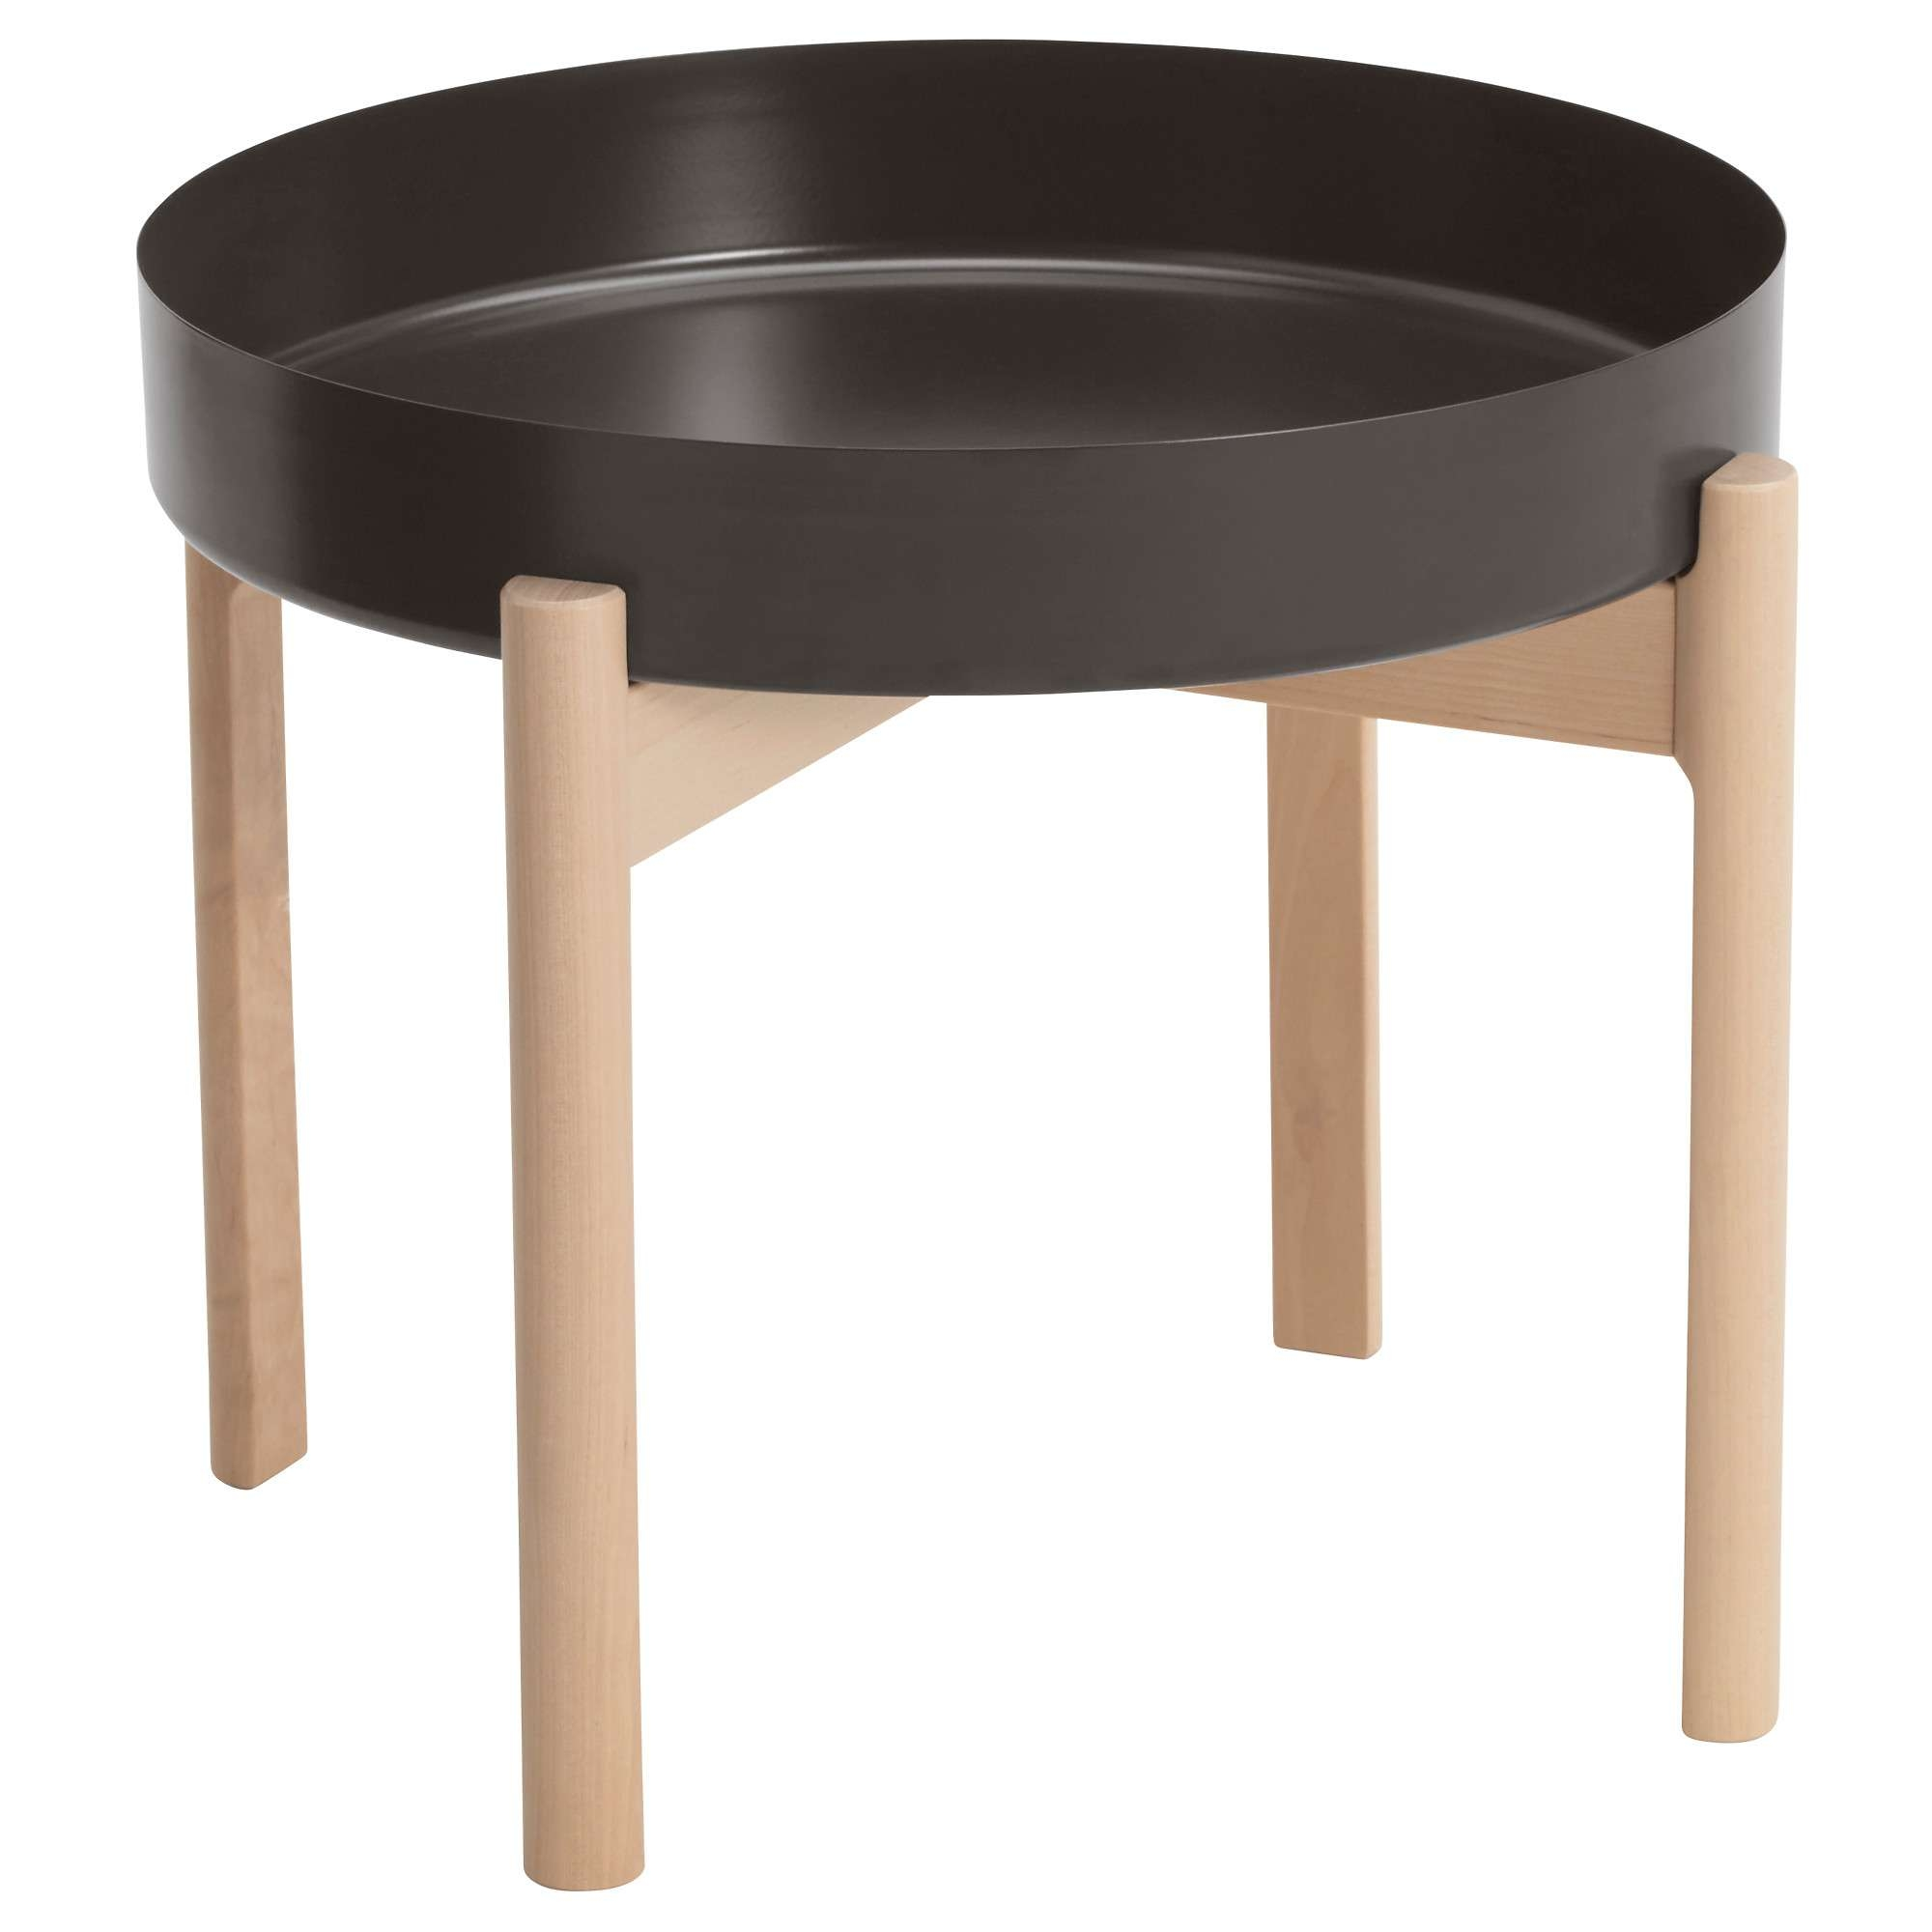 Famous Wooden Coffee Tables Intended For Coffee Tables – Glass & Wooden Coffee Tables – Ikea (View 9 of 20)